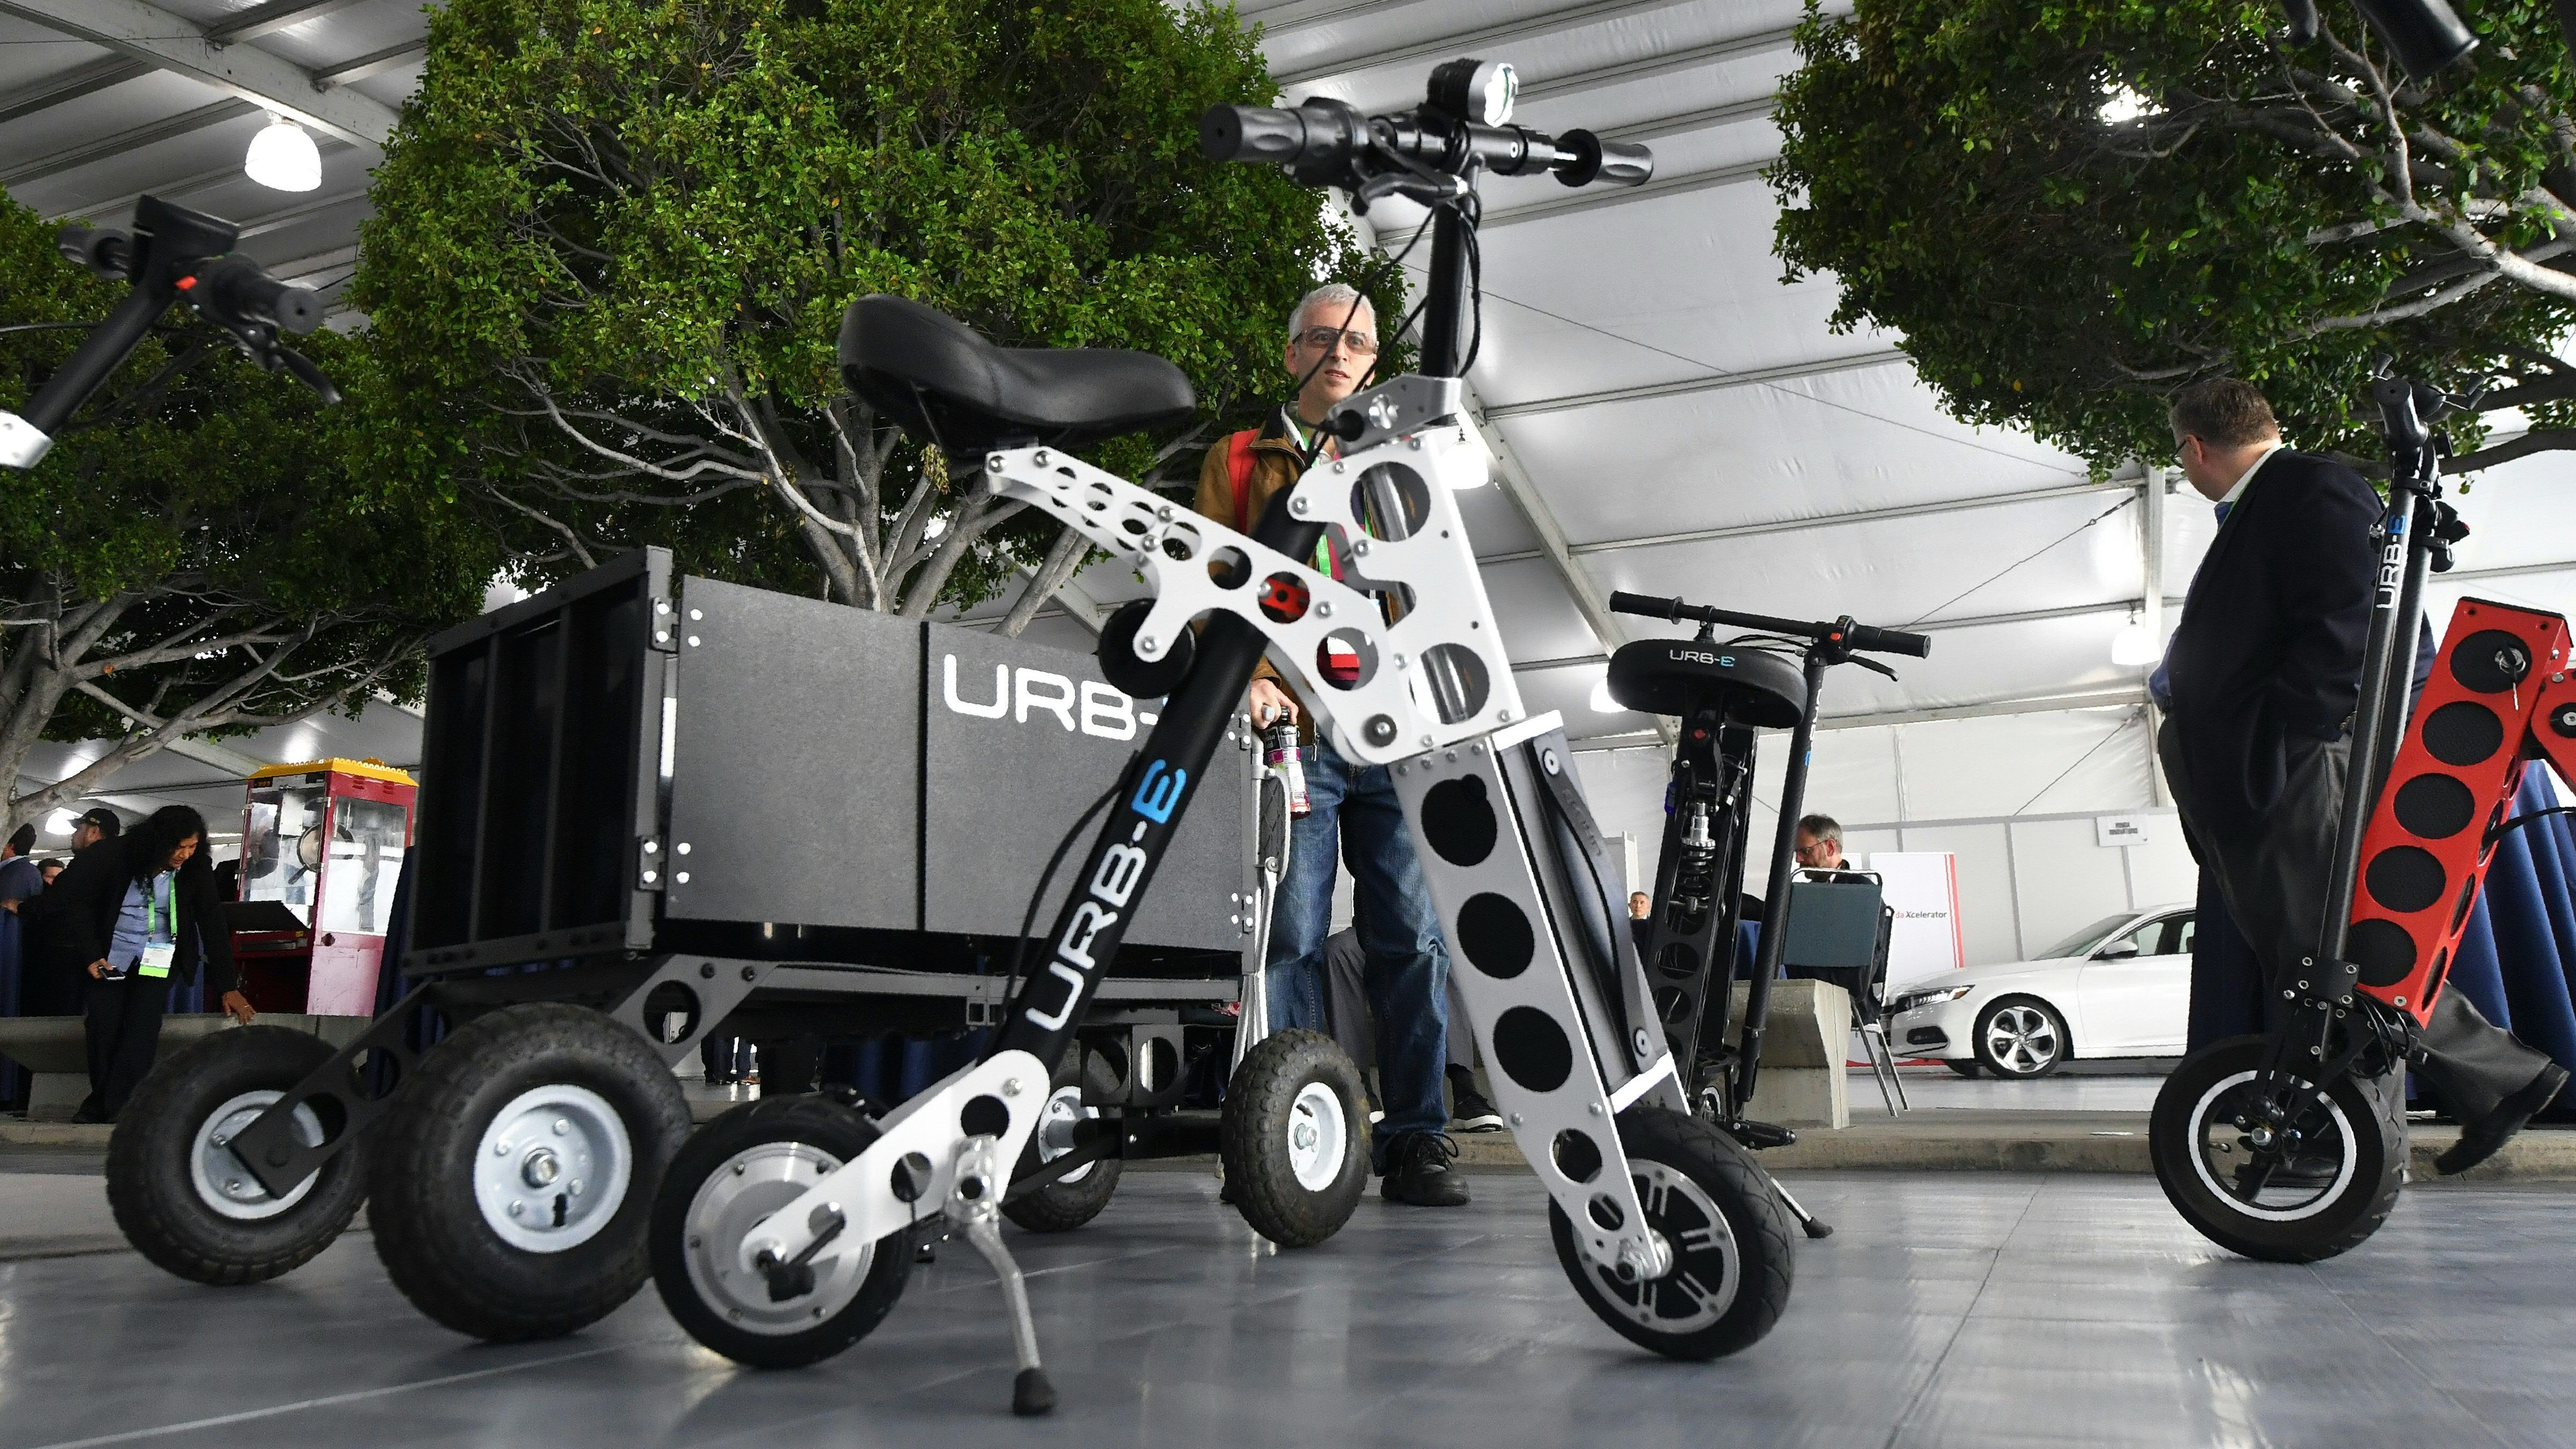 New Wave Of Electric 2 Wheelers U S City Streets